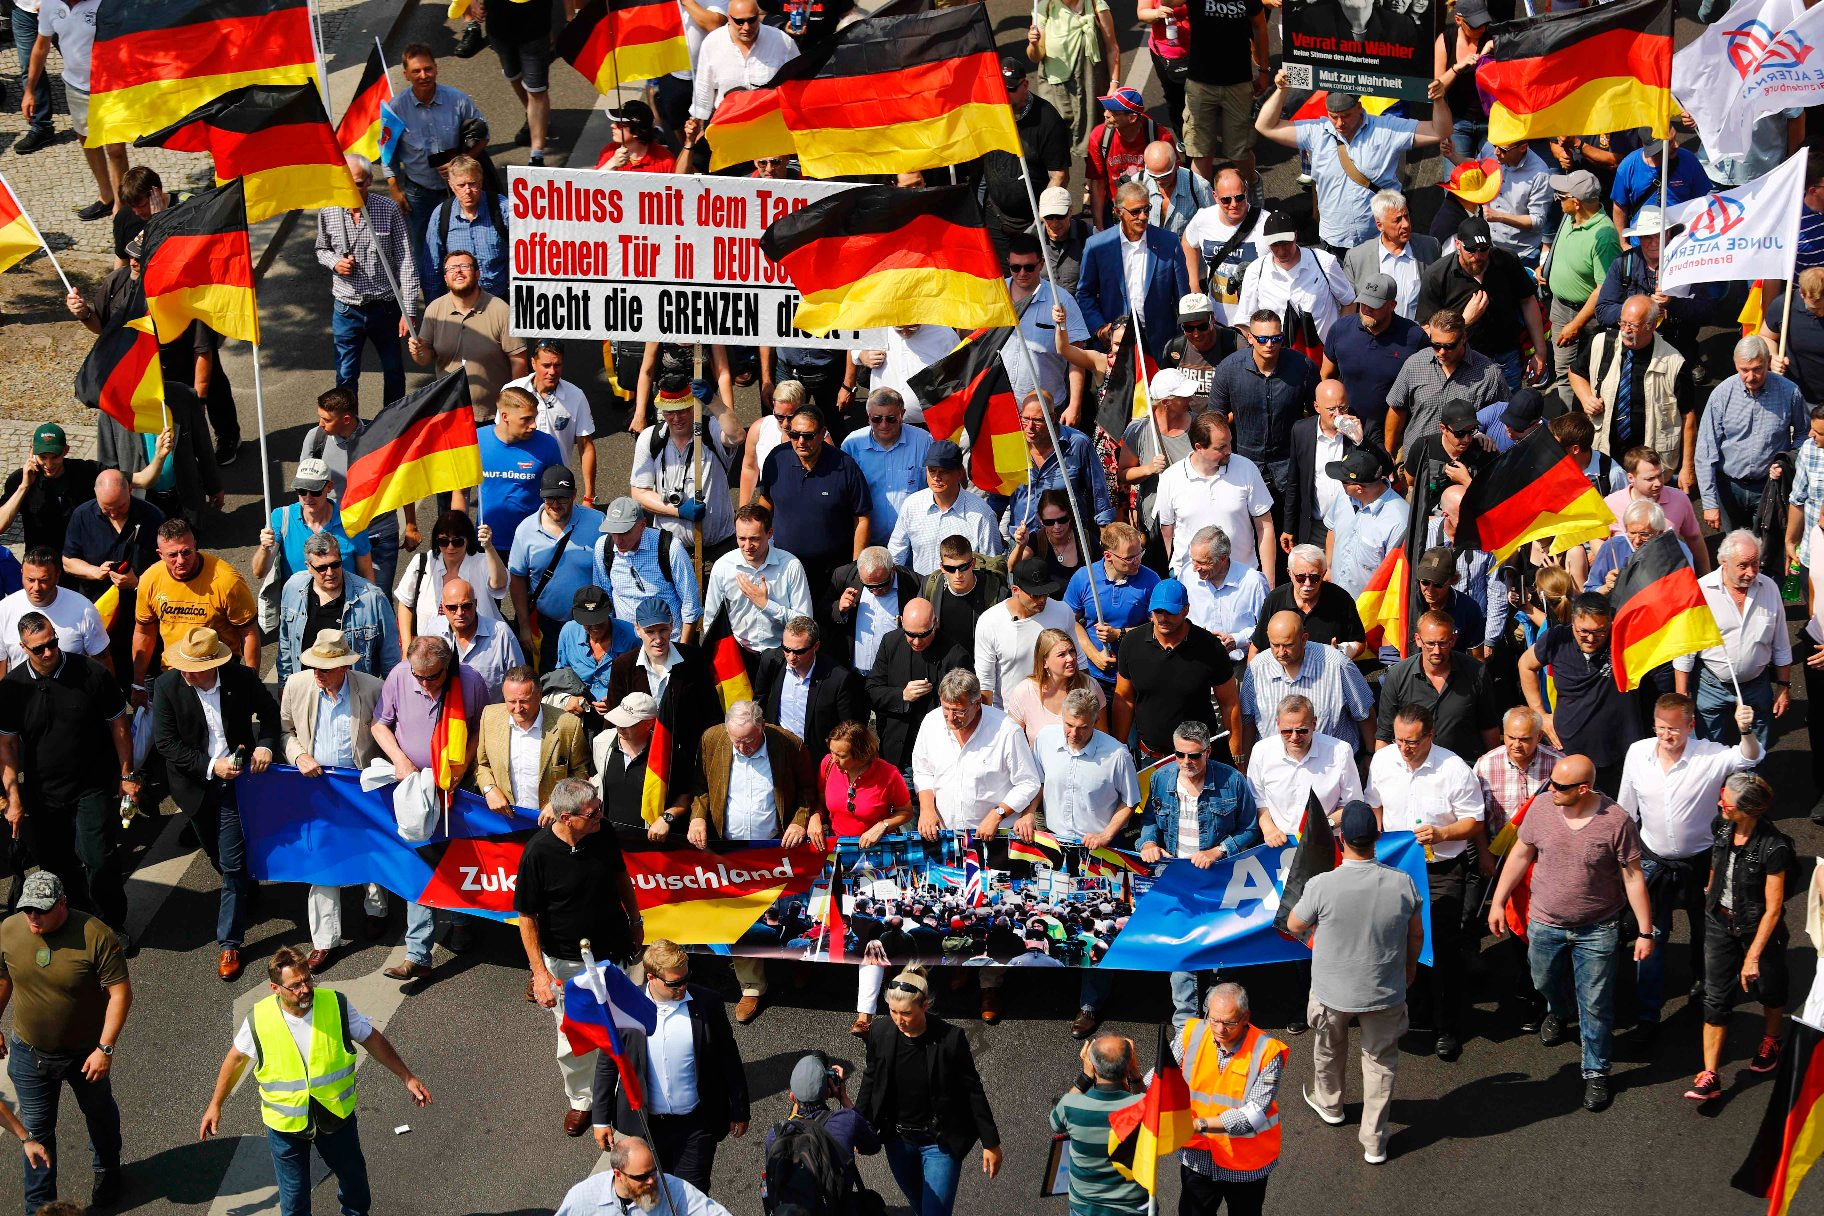 Supporters of the Anti-immigration party Alternative for Germany (AfD) walk during a protest in Berlin, Germany May 27, 2018. REUTERS/Hannibal Hanschke